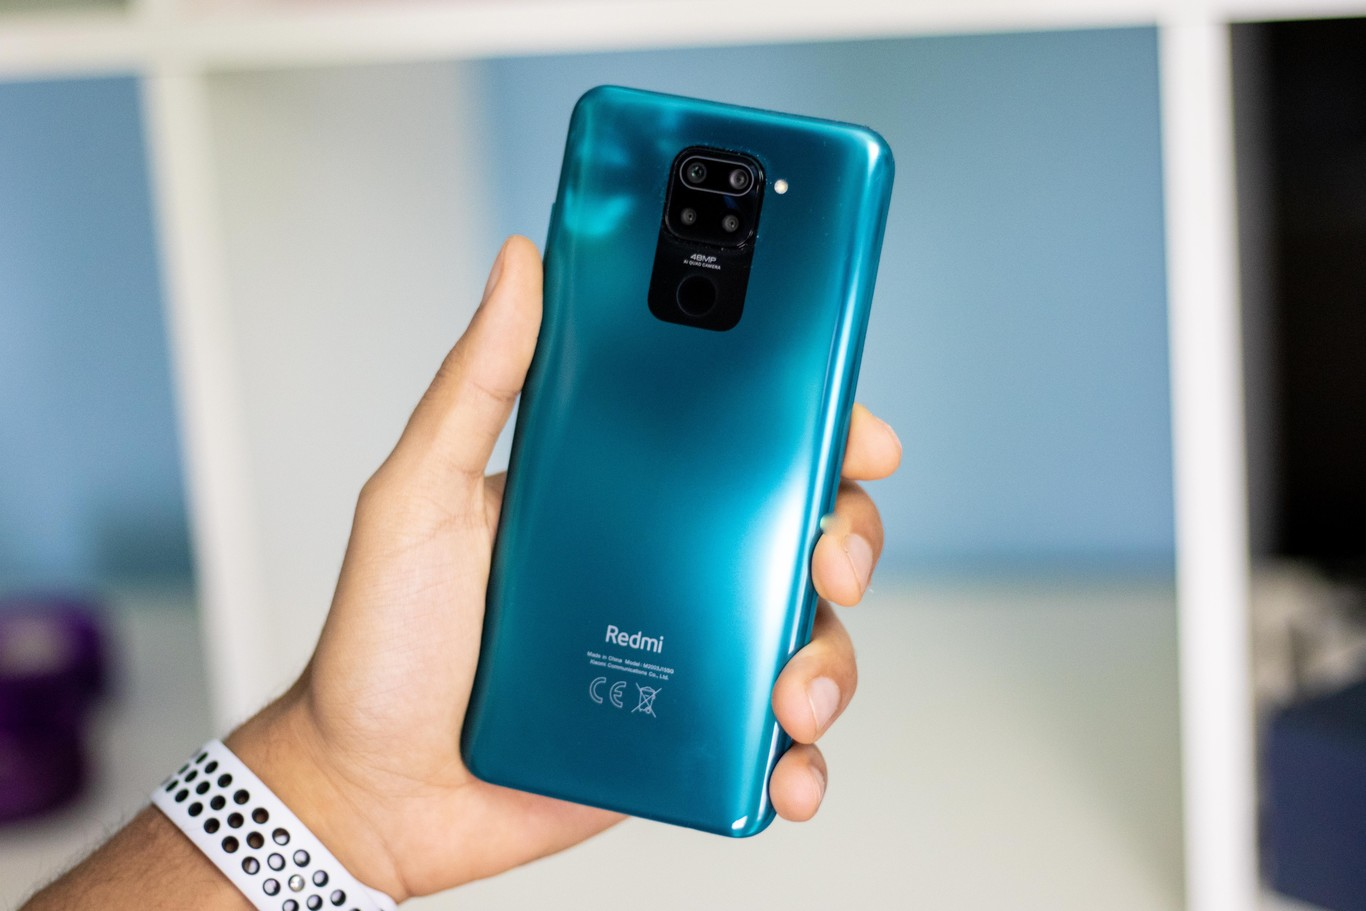 redmi note 9 and as a gaming phone today